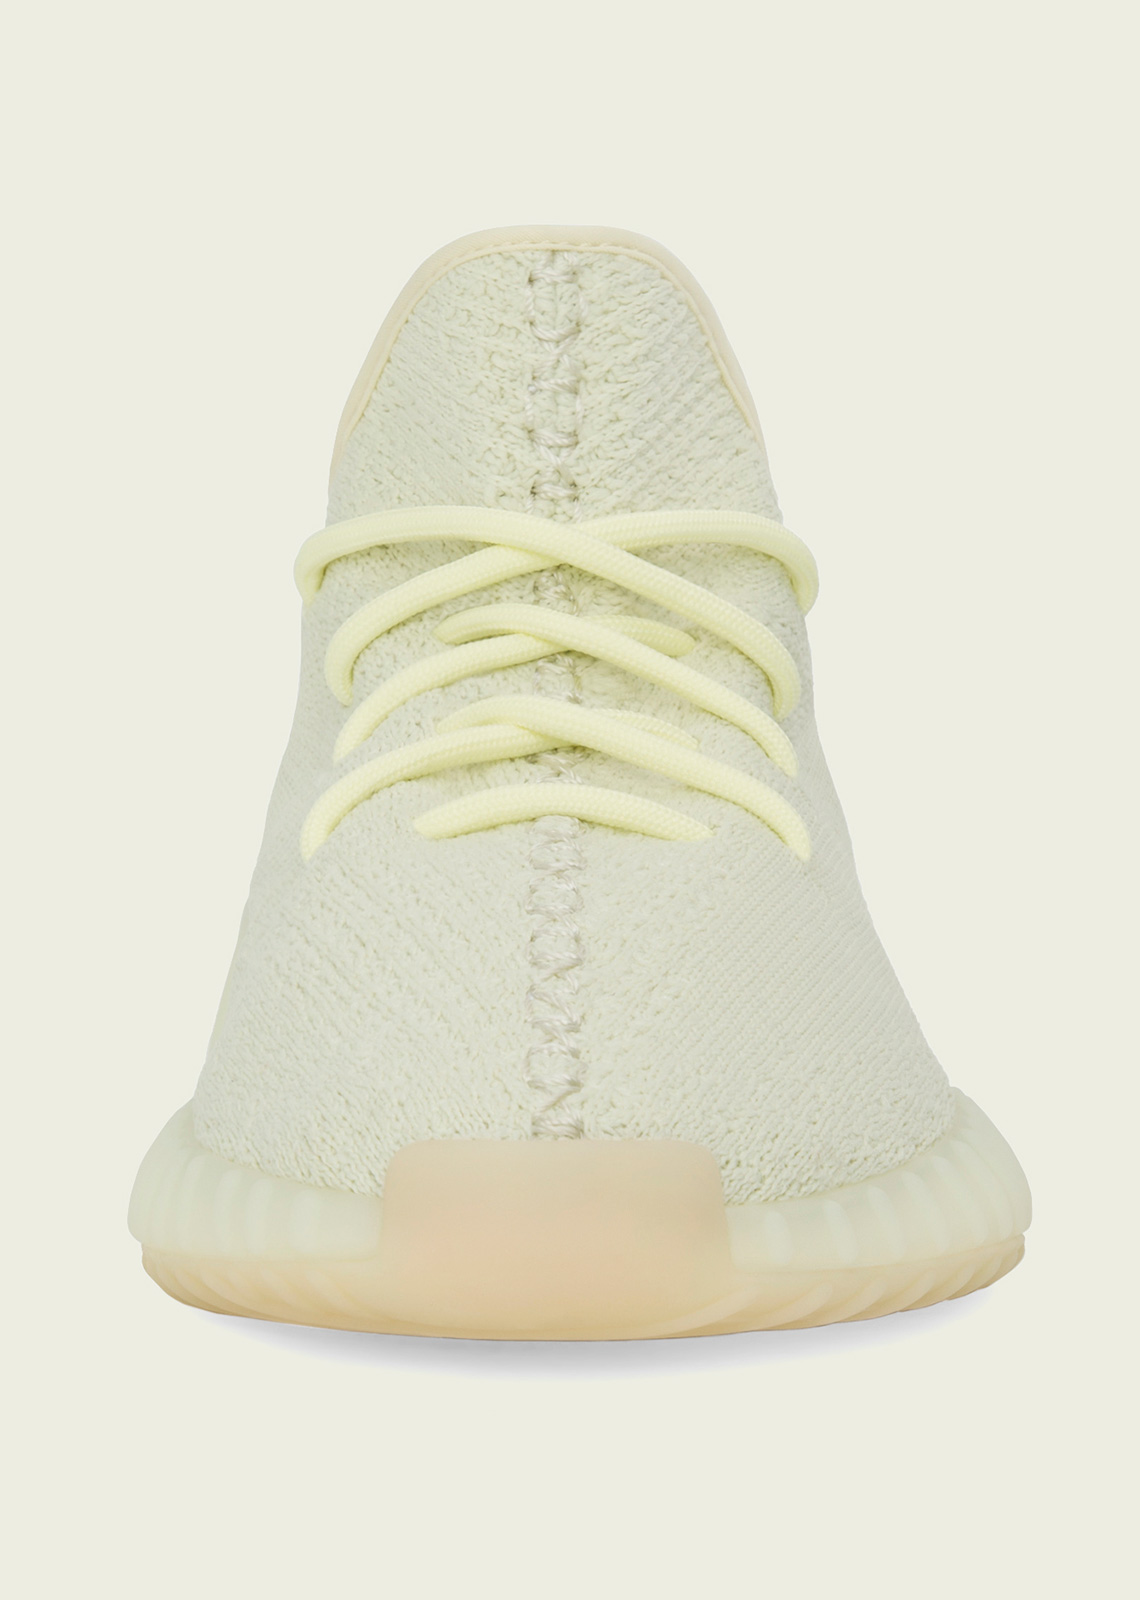 48f418ea1823e adidas Yeezy Boost 350 v2. Release Date  June 30th